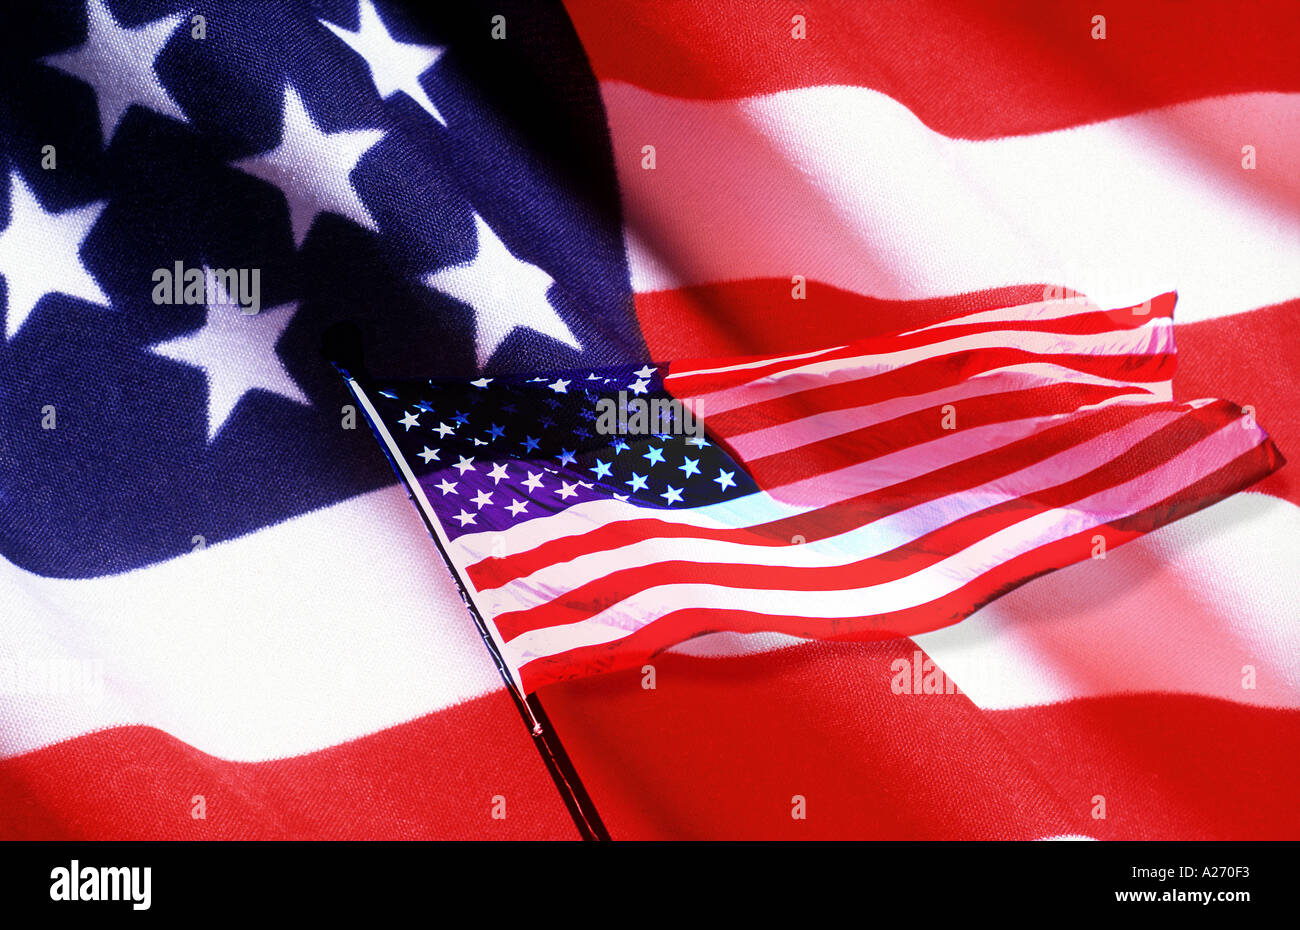 Stars Stripes USA flag concept Photo Stock